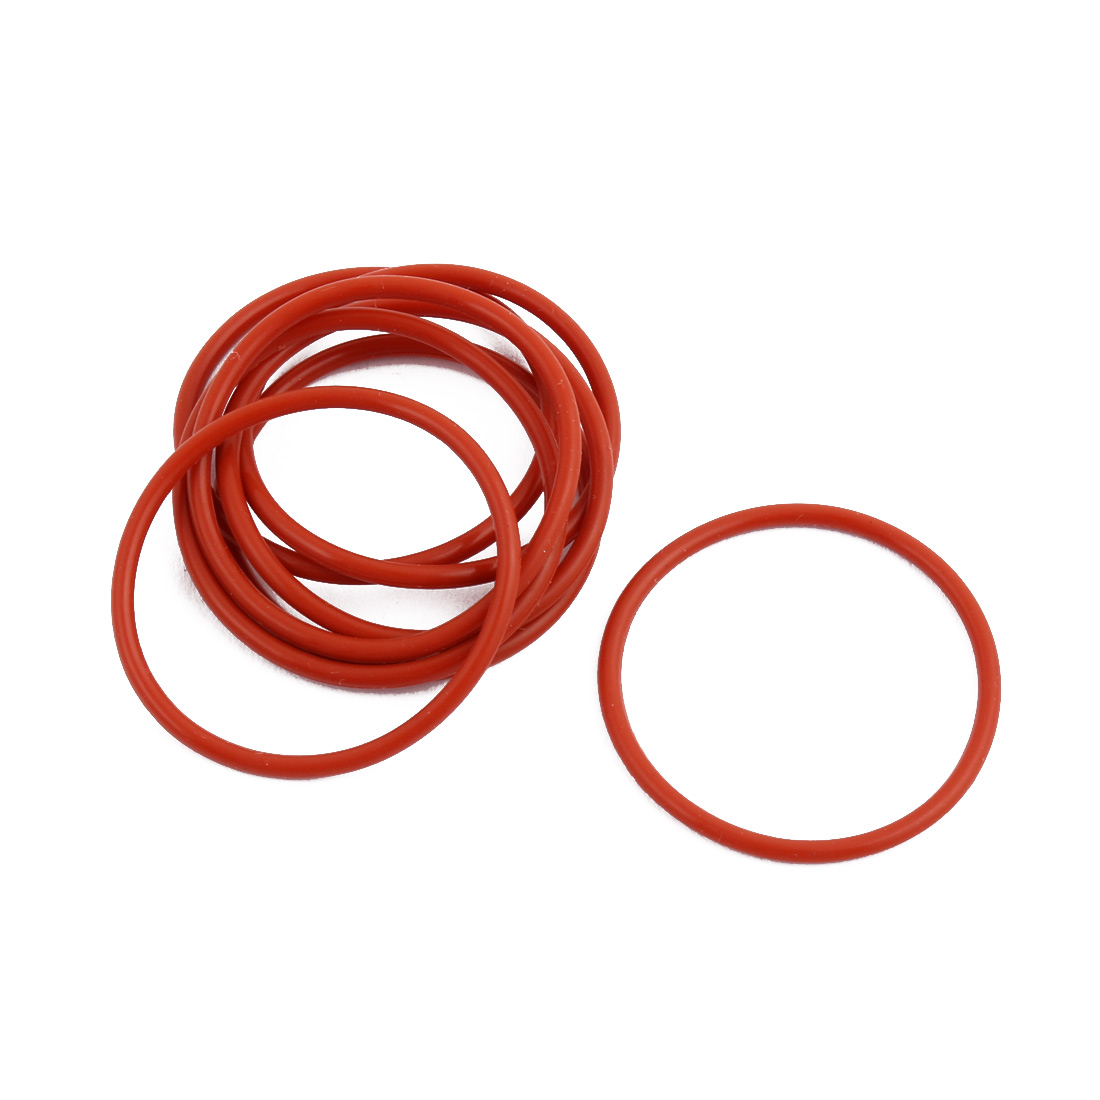 10Pcs Red Round Nitrile Butadiene Rubber NBR O-Ring 32mm OD 1.9mm Width